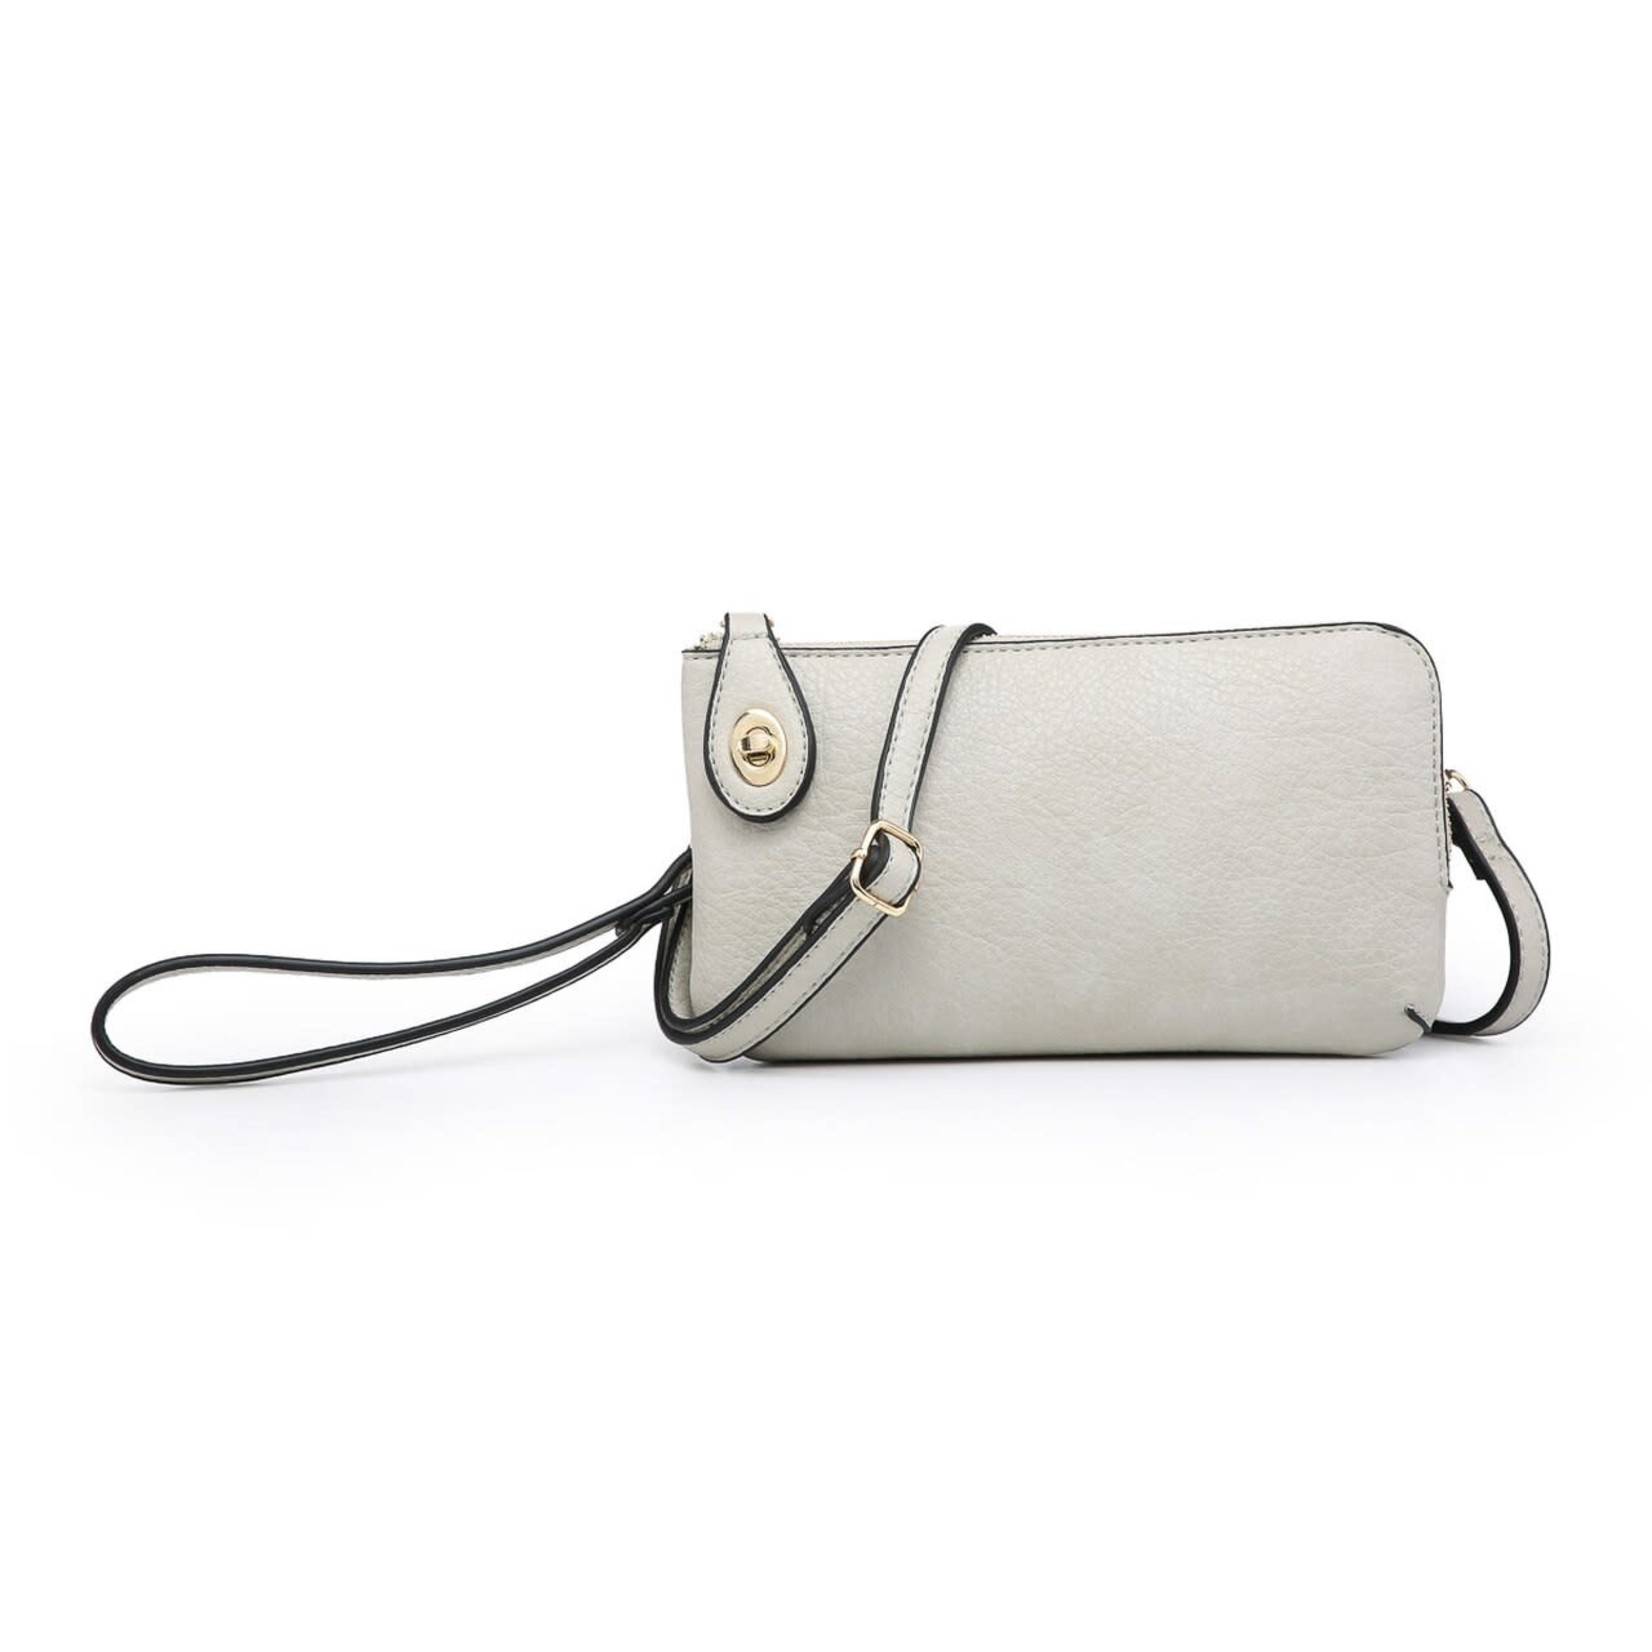 Jen & Co M1818-BONE:  Kendall Crossbody / Wristlet - Bone